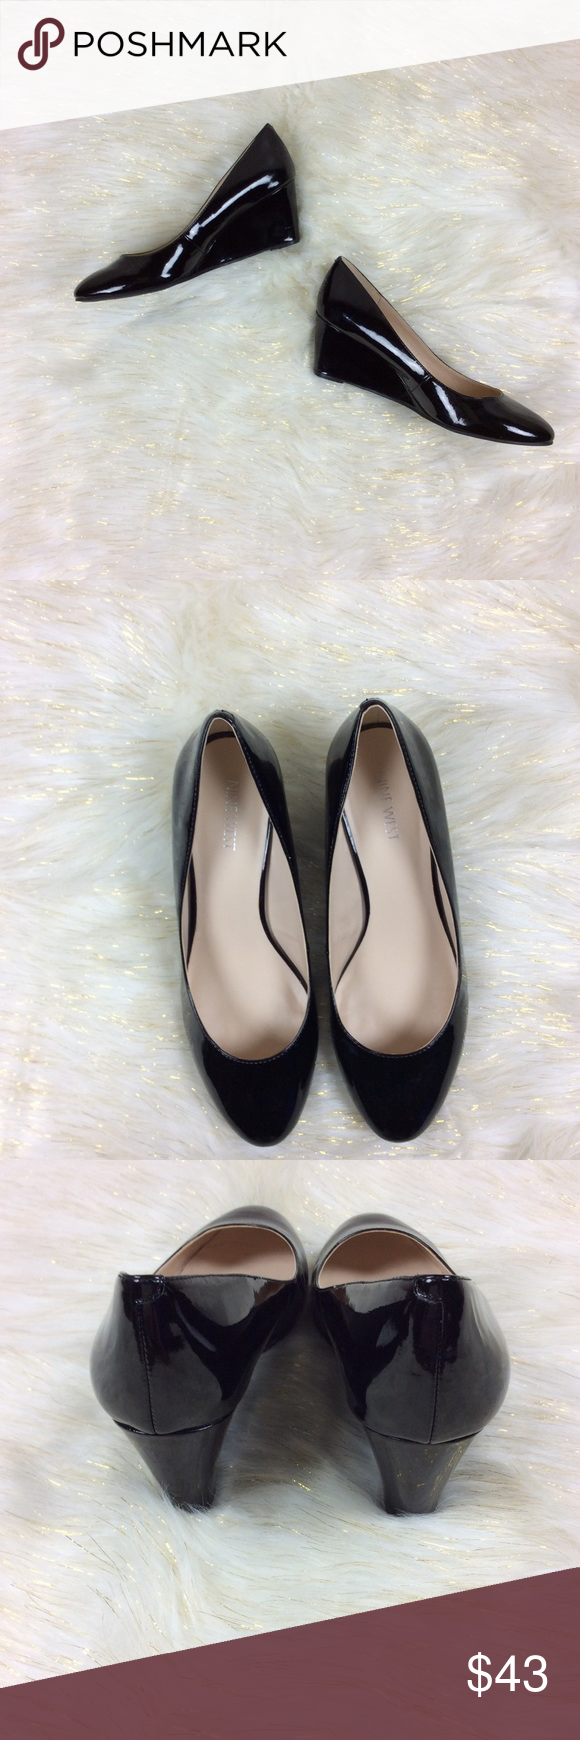 3a074c37334 Nine West Jessa Black Patent Wedges 9.5M Classic patent wedges that go with  everything! These are in EXCELLENT condition!! No marks or…